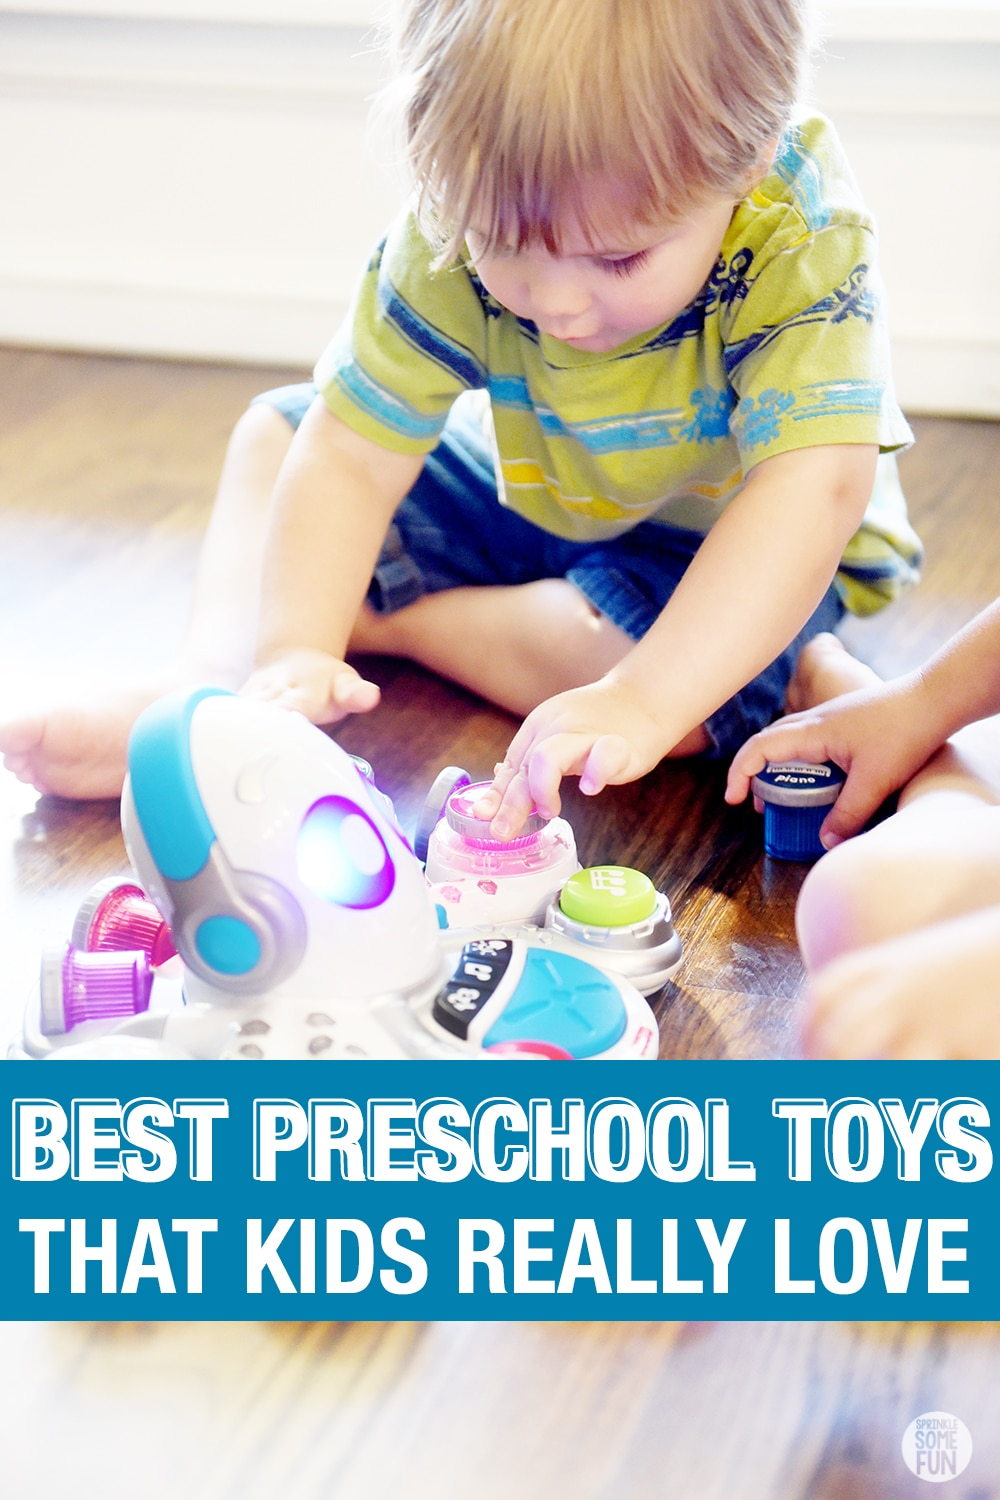 The best preschool toys are easy to pick out once you know how preschoolers play and what gives them the most satisfaction.  Here are 5 Tips for Picking the Best Preschool Toys. #preschool #toys #bestpreschooltoys #learningtoys #preschoolgifts #gift #christmaslist #kids #parenting #learning #playtolearn